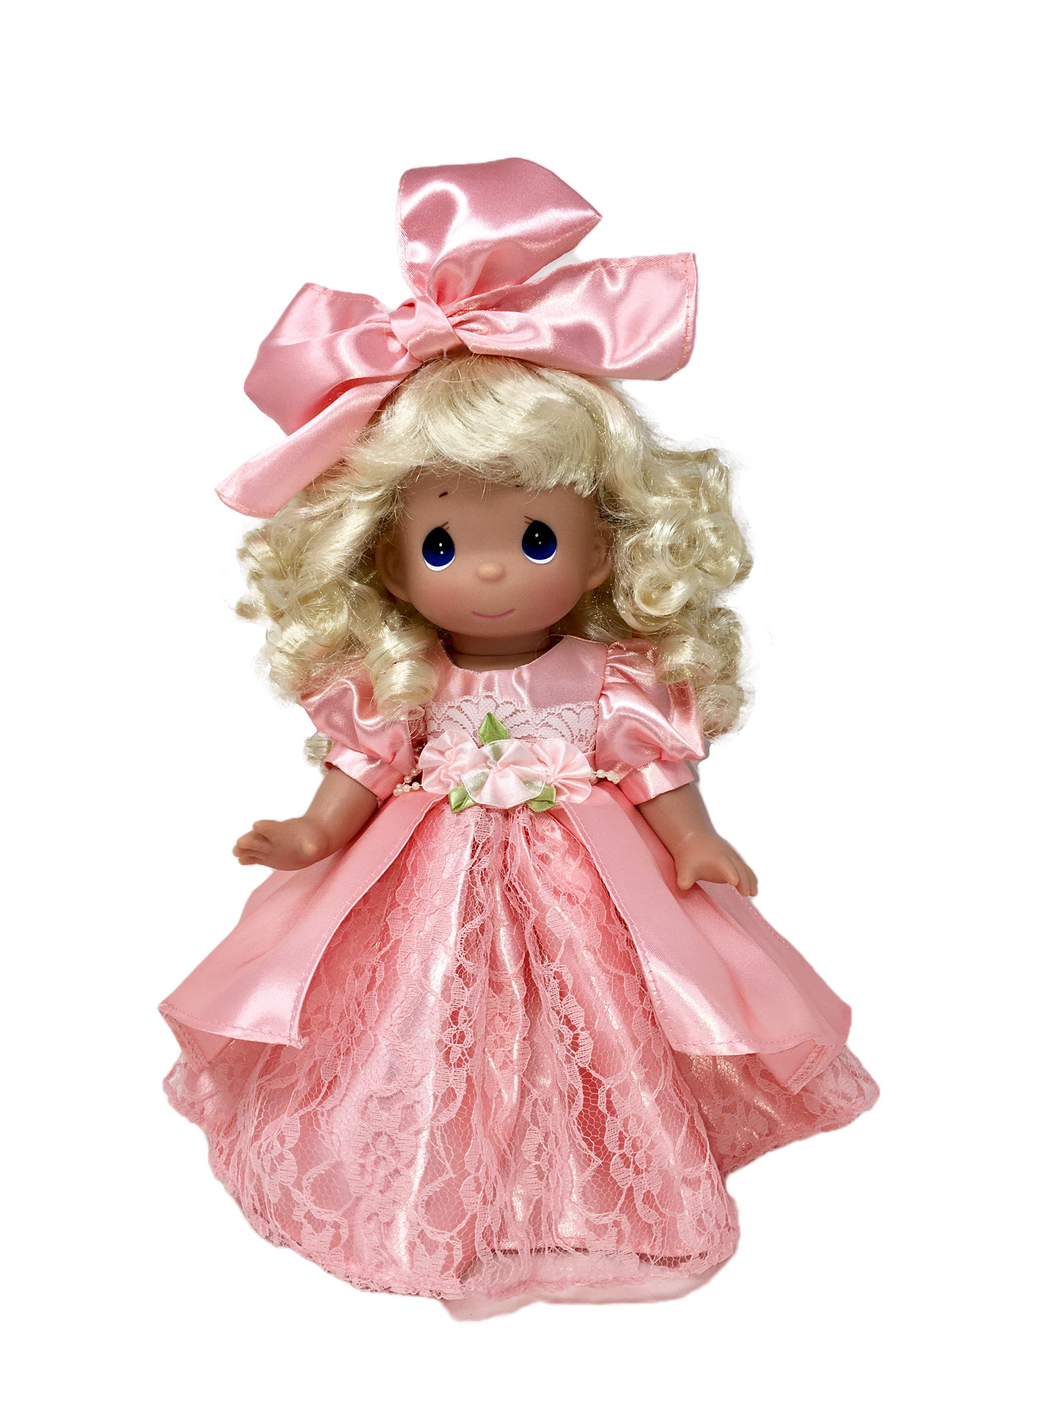 "Little Golden Girl of Mine - 12"" Doll"